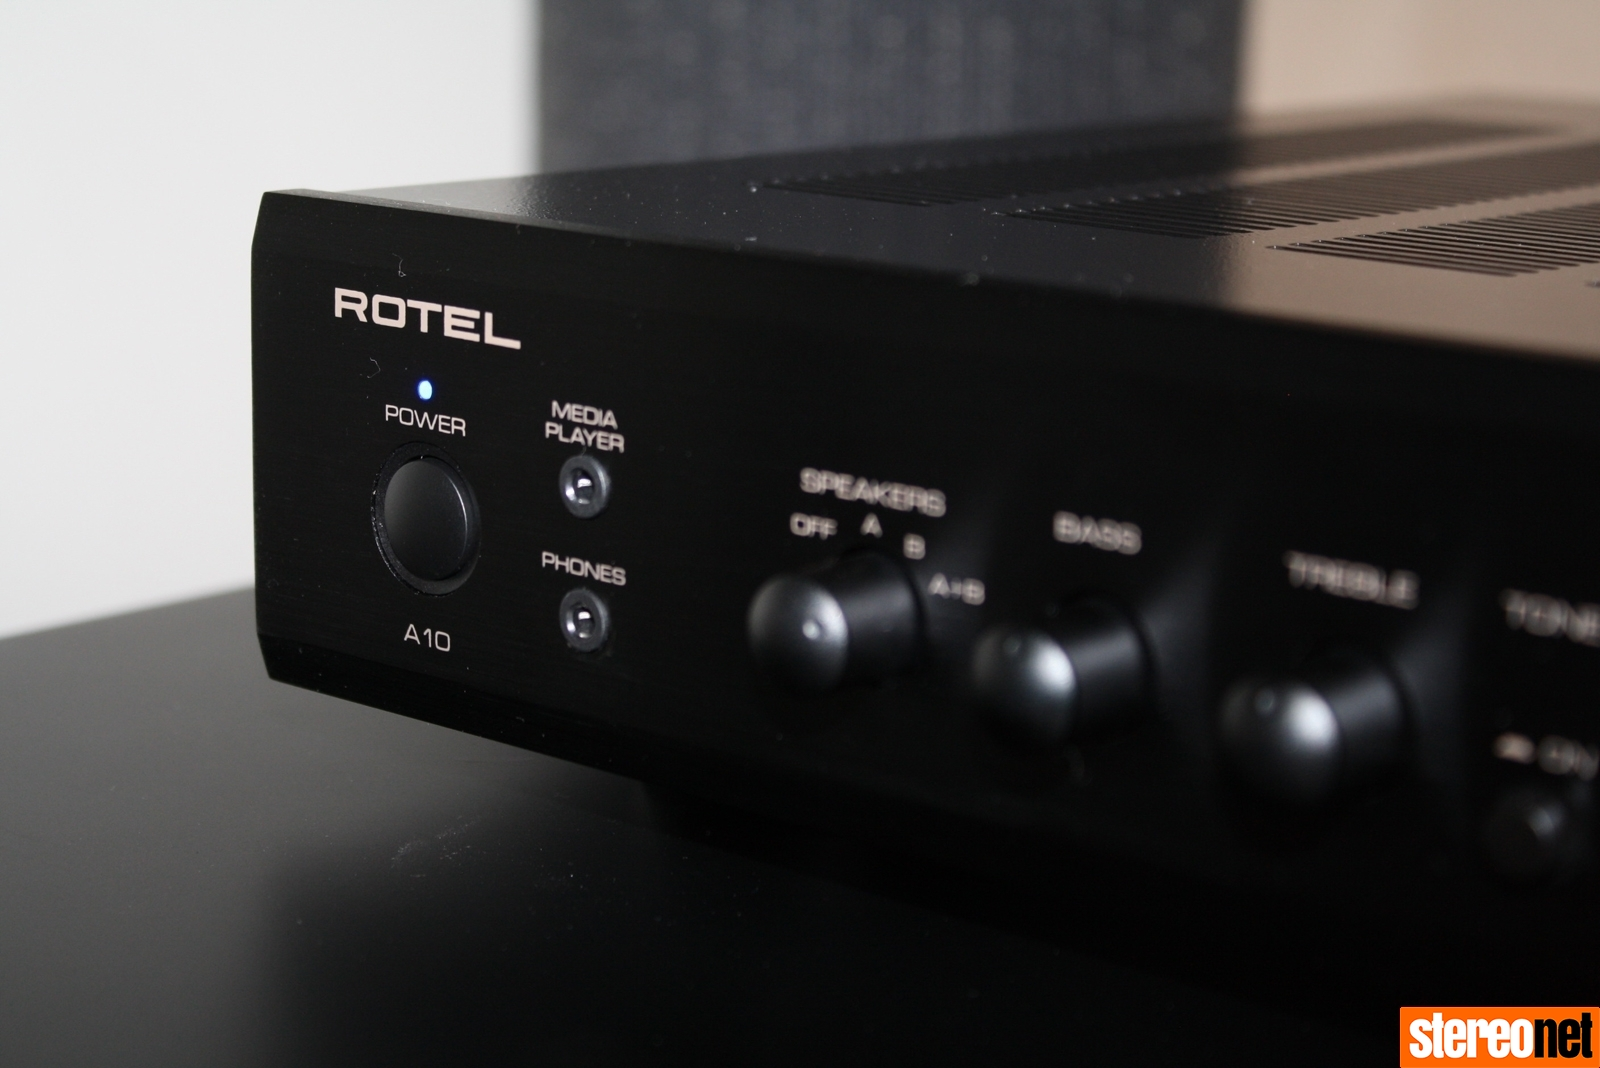 Rotel A10 review